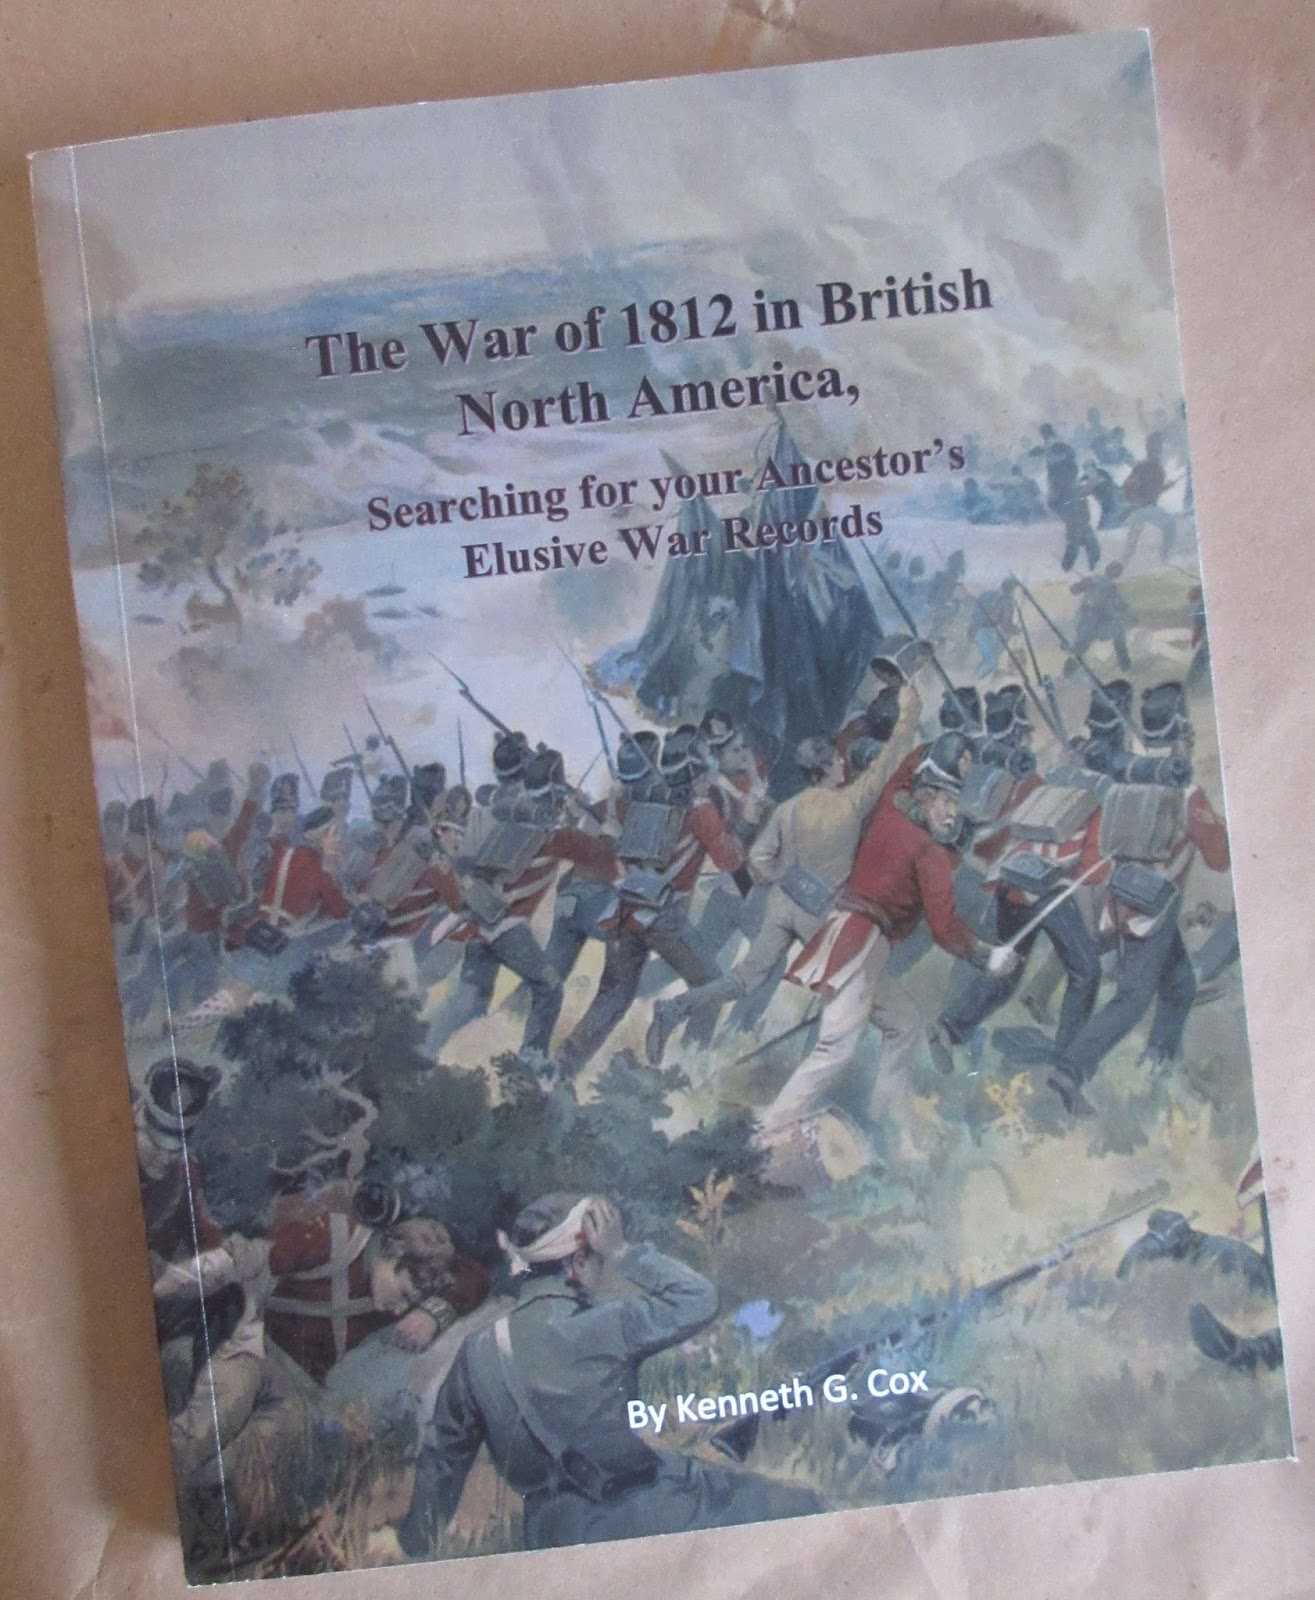 an analysis of the war of 1812 from a britishcanadian perspective Bibliography of the war of 1812 (redirected from war of 1812 bibliography) the war of 1812 bibliography is a selective, annotated bibliography using apa style citations of the many books related to the war of 1812 there are thousands of books and articles written about this topic.